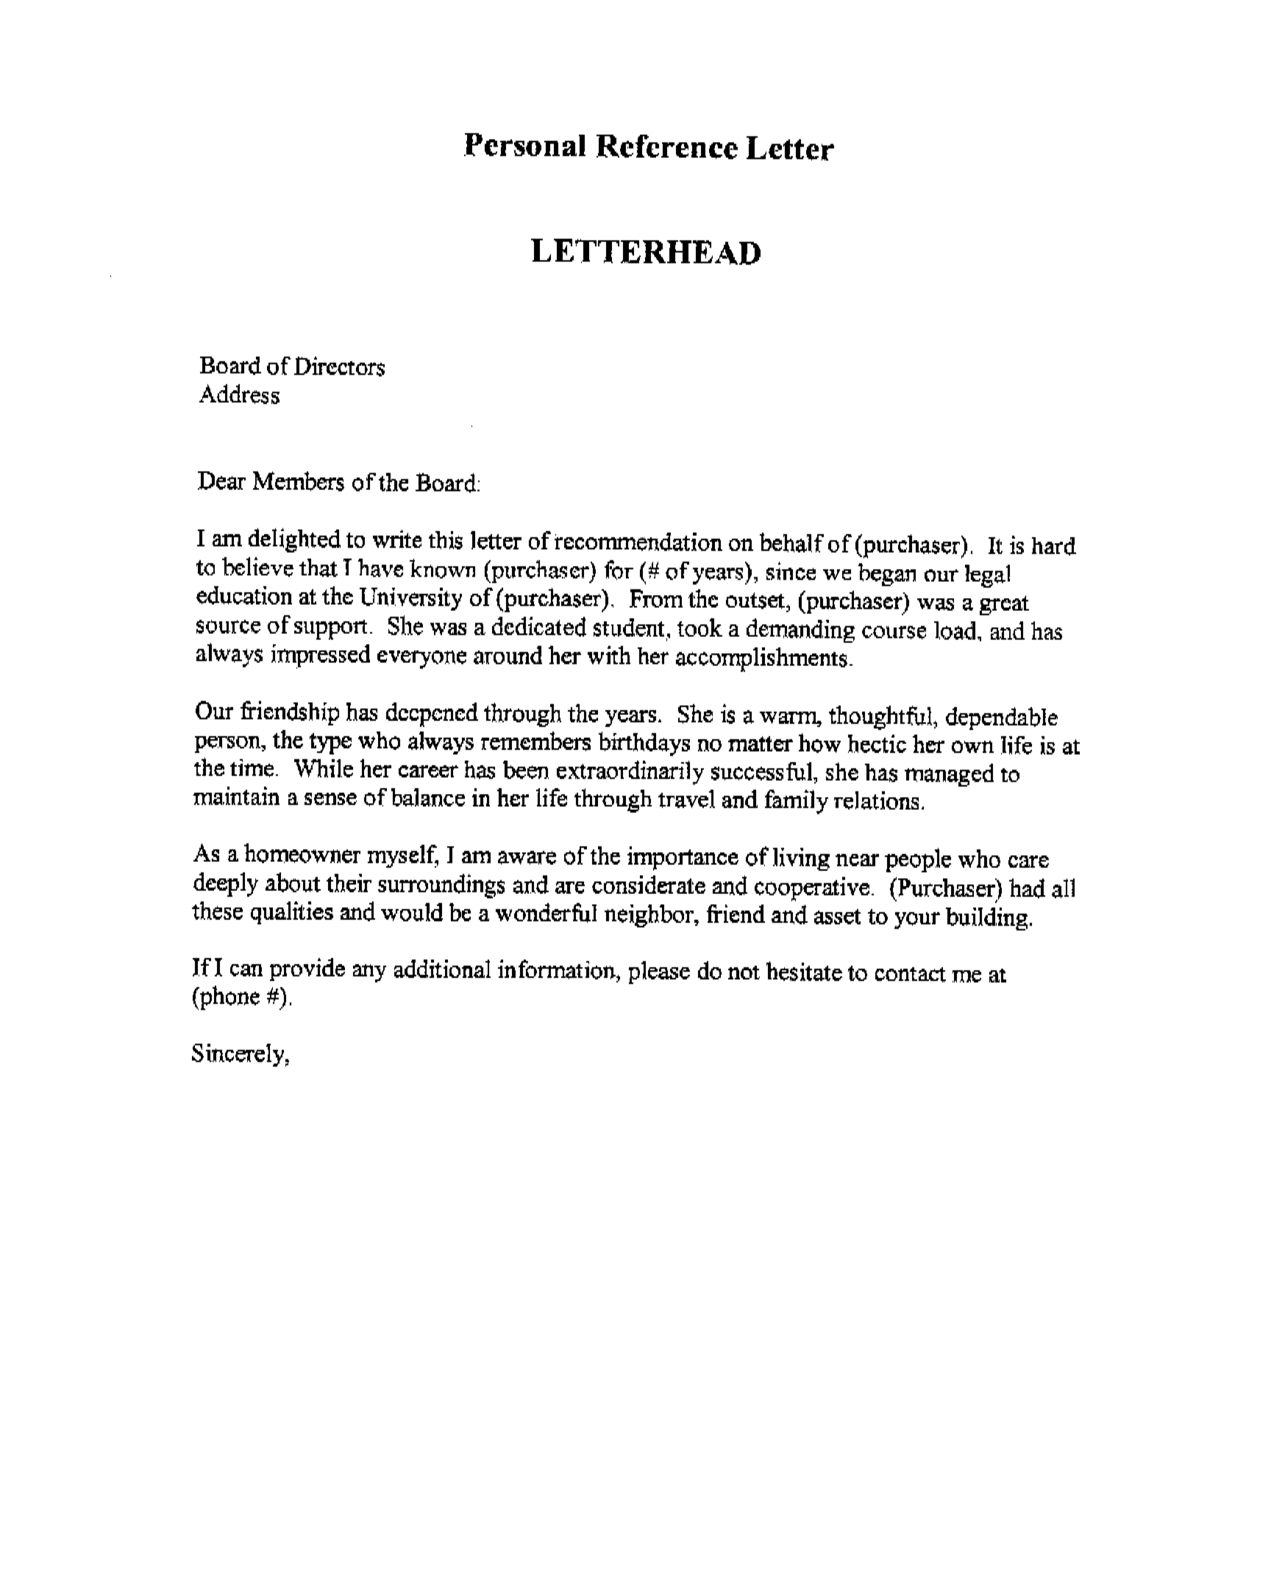 Letter of recognition example peer recommendation letter example letter of recommendation examples and writing tips a letter professional recommendation letter this is an example spiritdancerdesigns